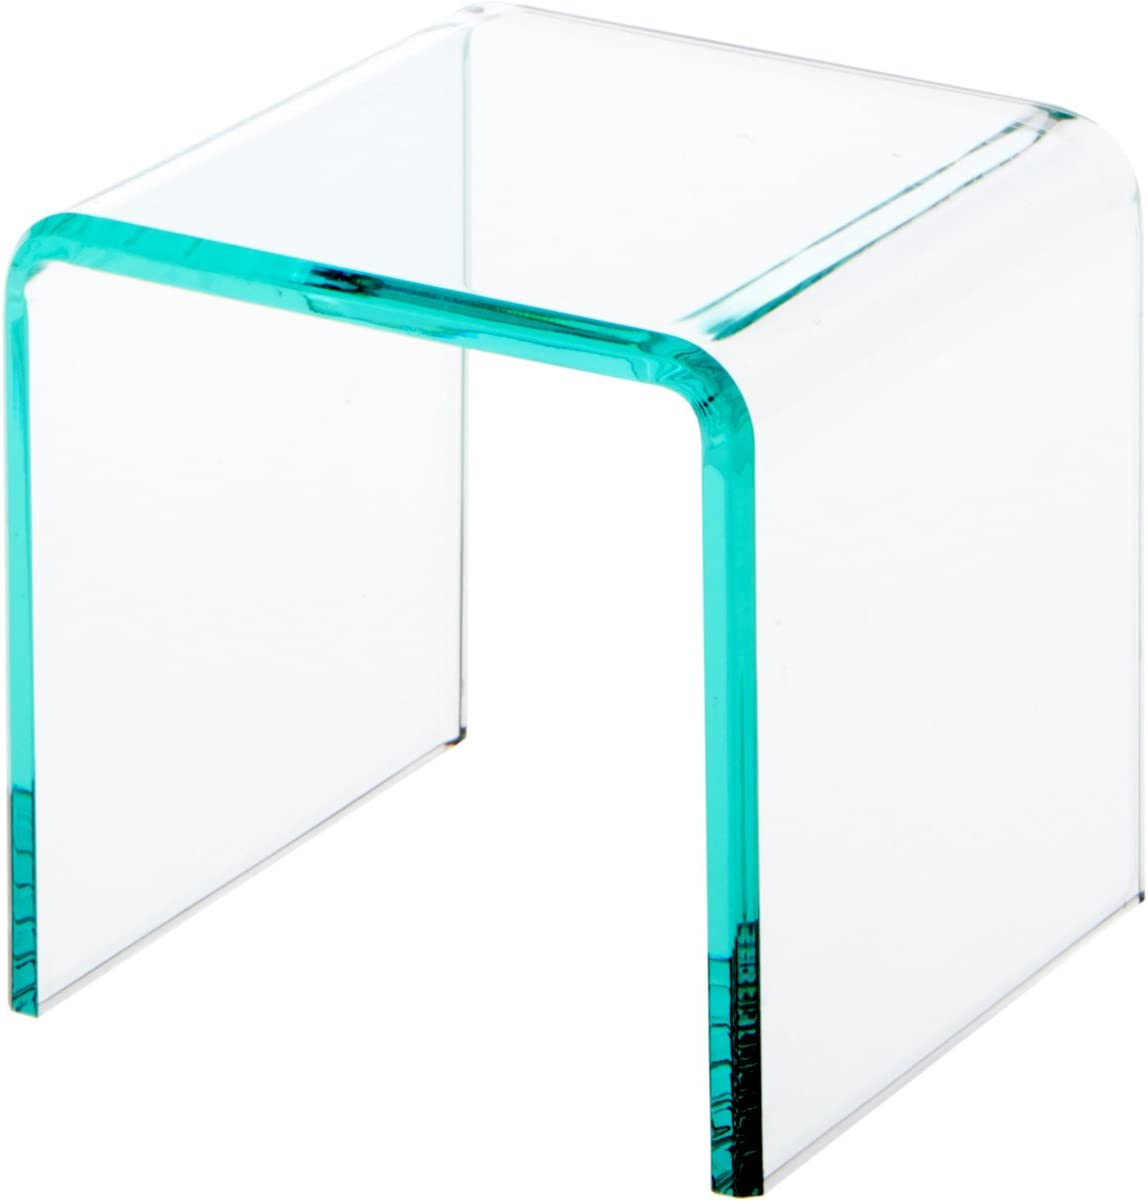 Plymor Clear Acrylic Green Glass-Look Beveled オリジナル Display Riser 限定Special Price Edge